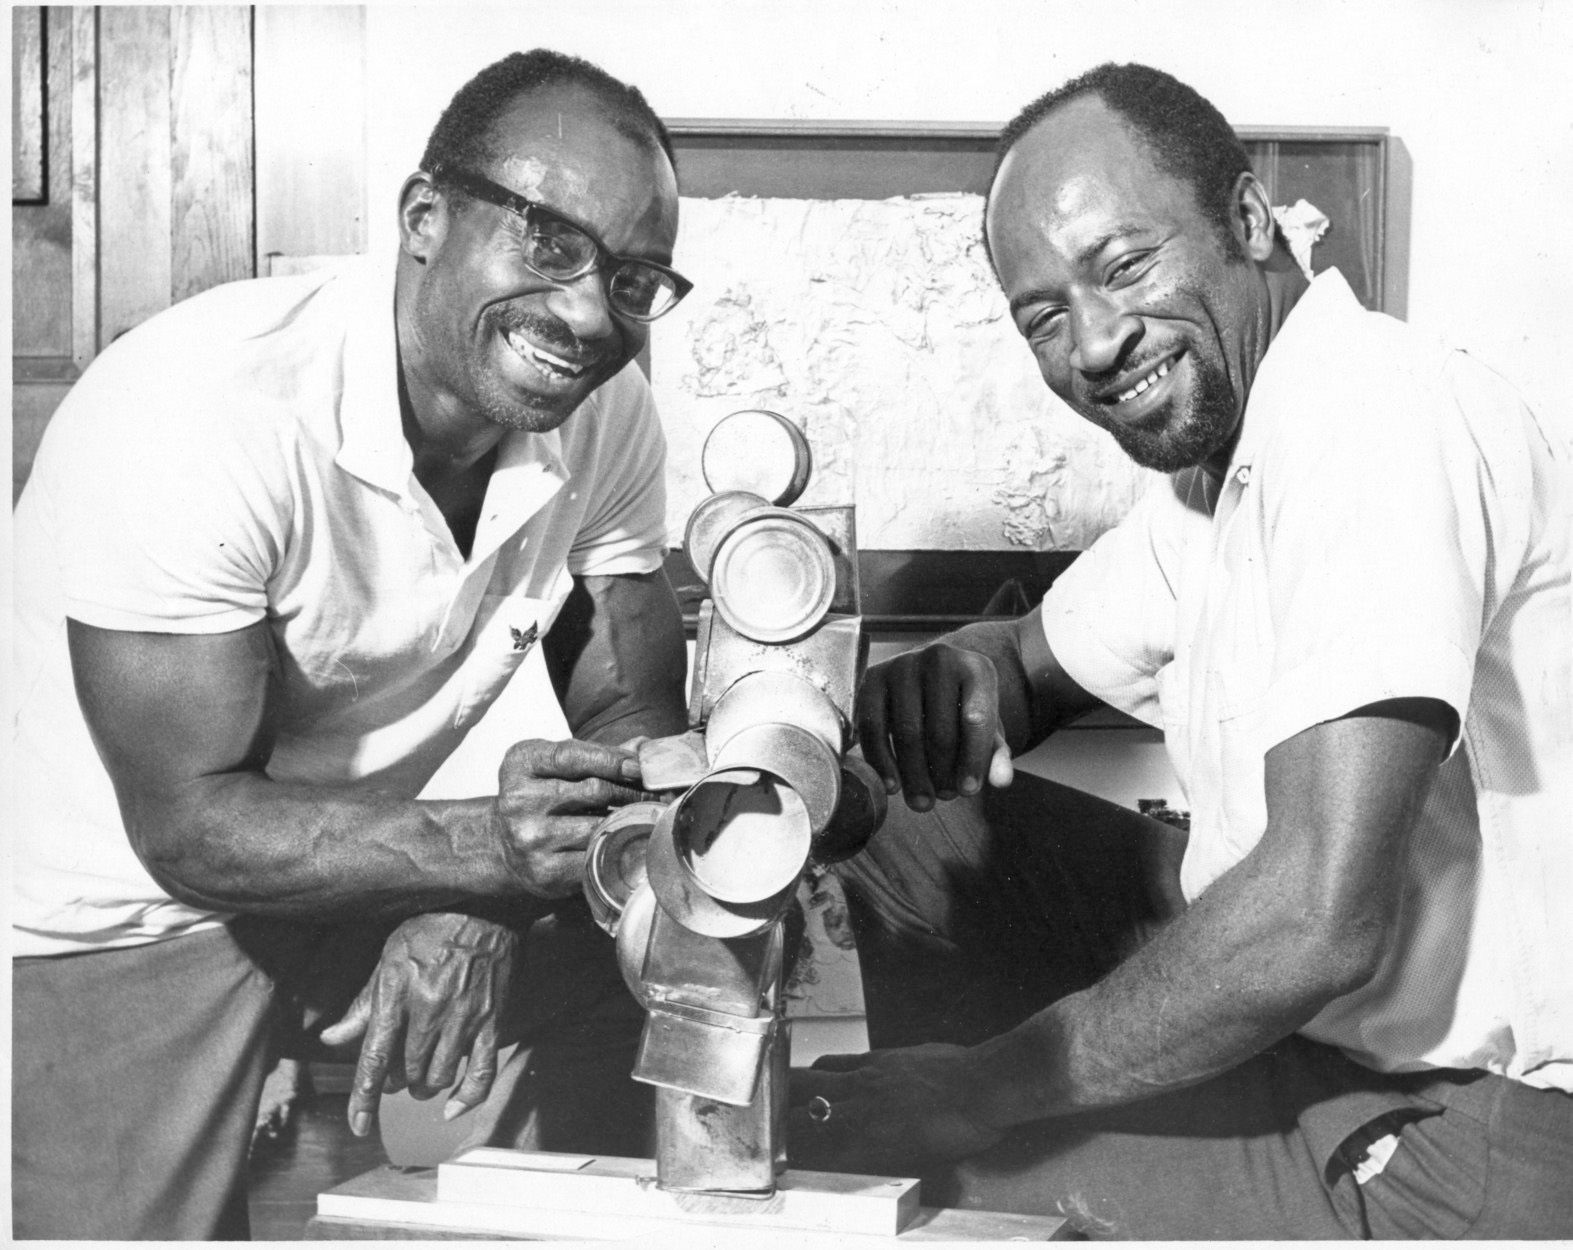 Noah Purifoy and Judson Powell at the Watts Towers Art Center, Los Angeles, ca. 1964. Courtesy of the Noah Purifoy Foundation.